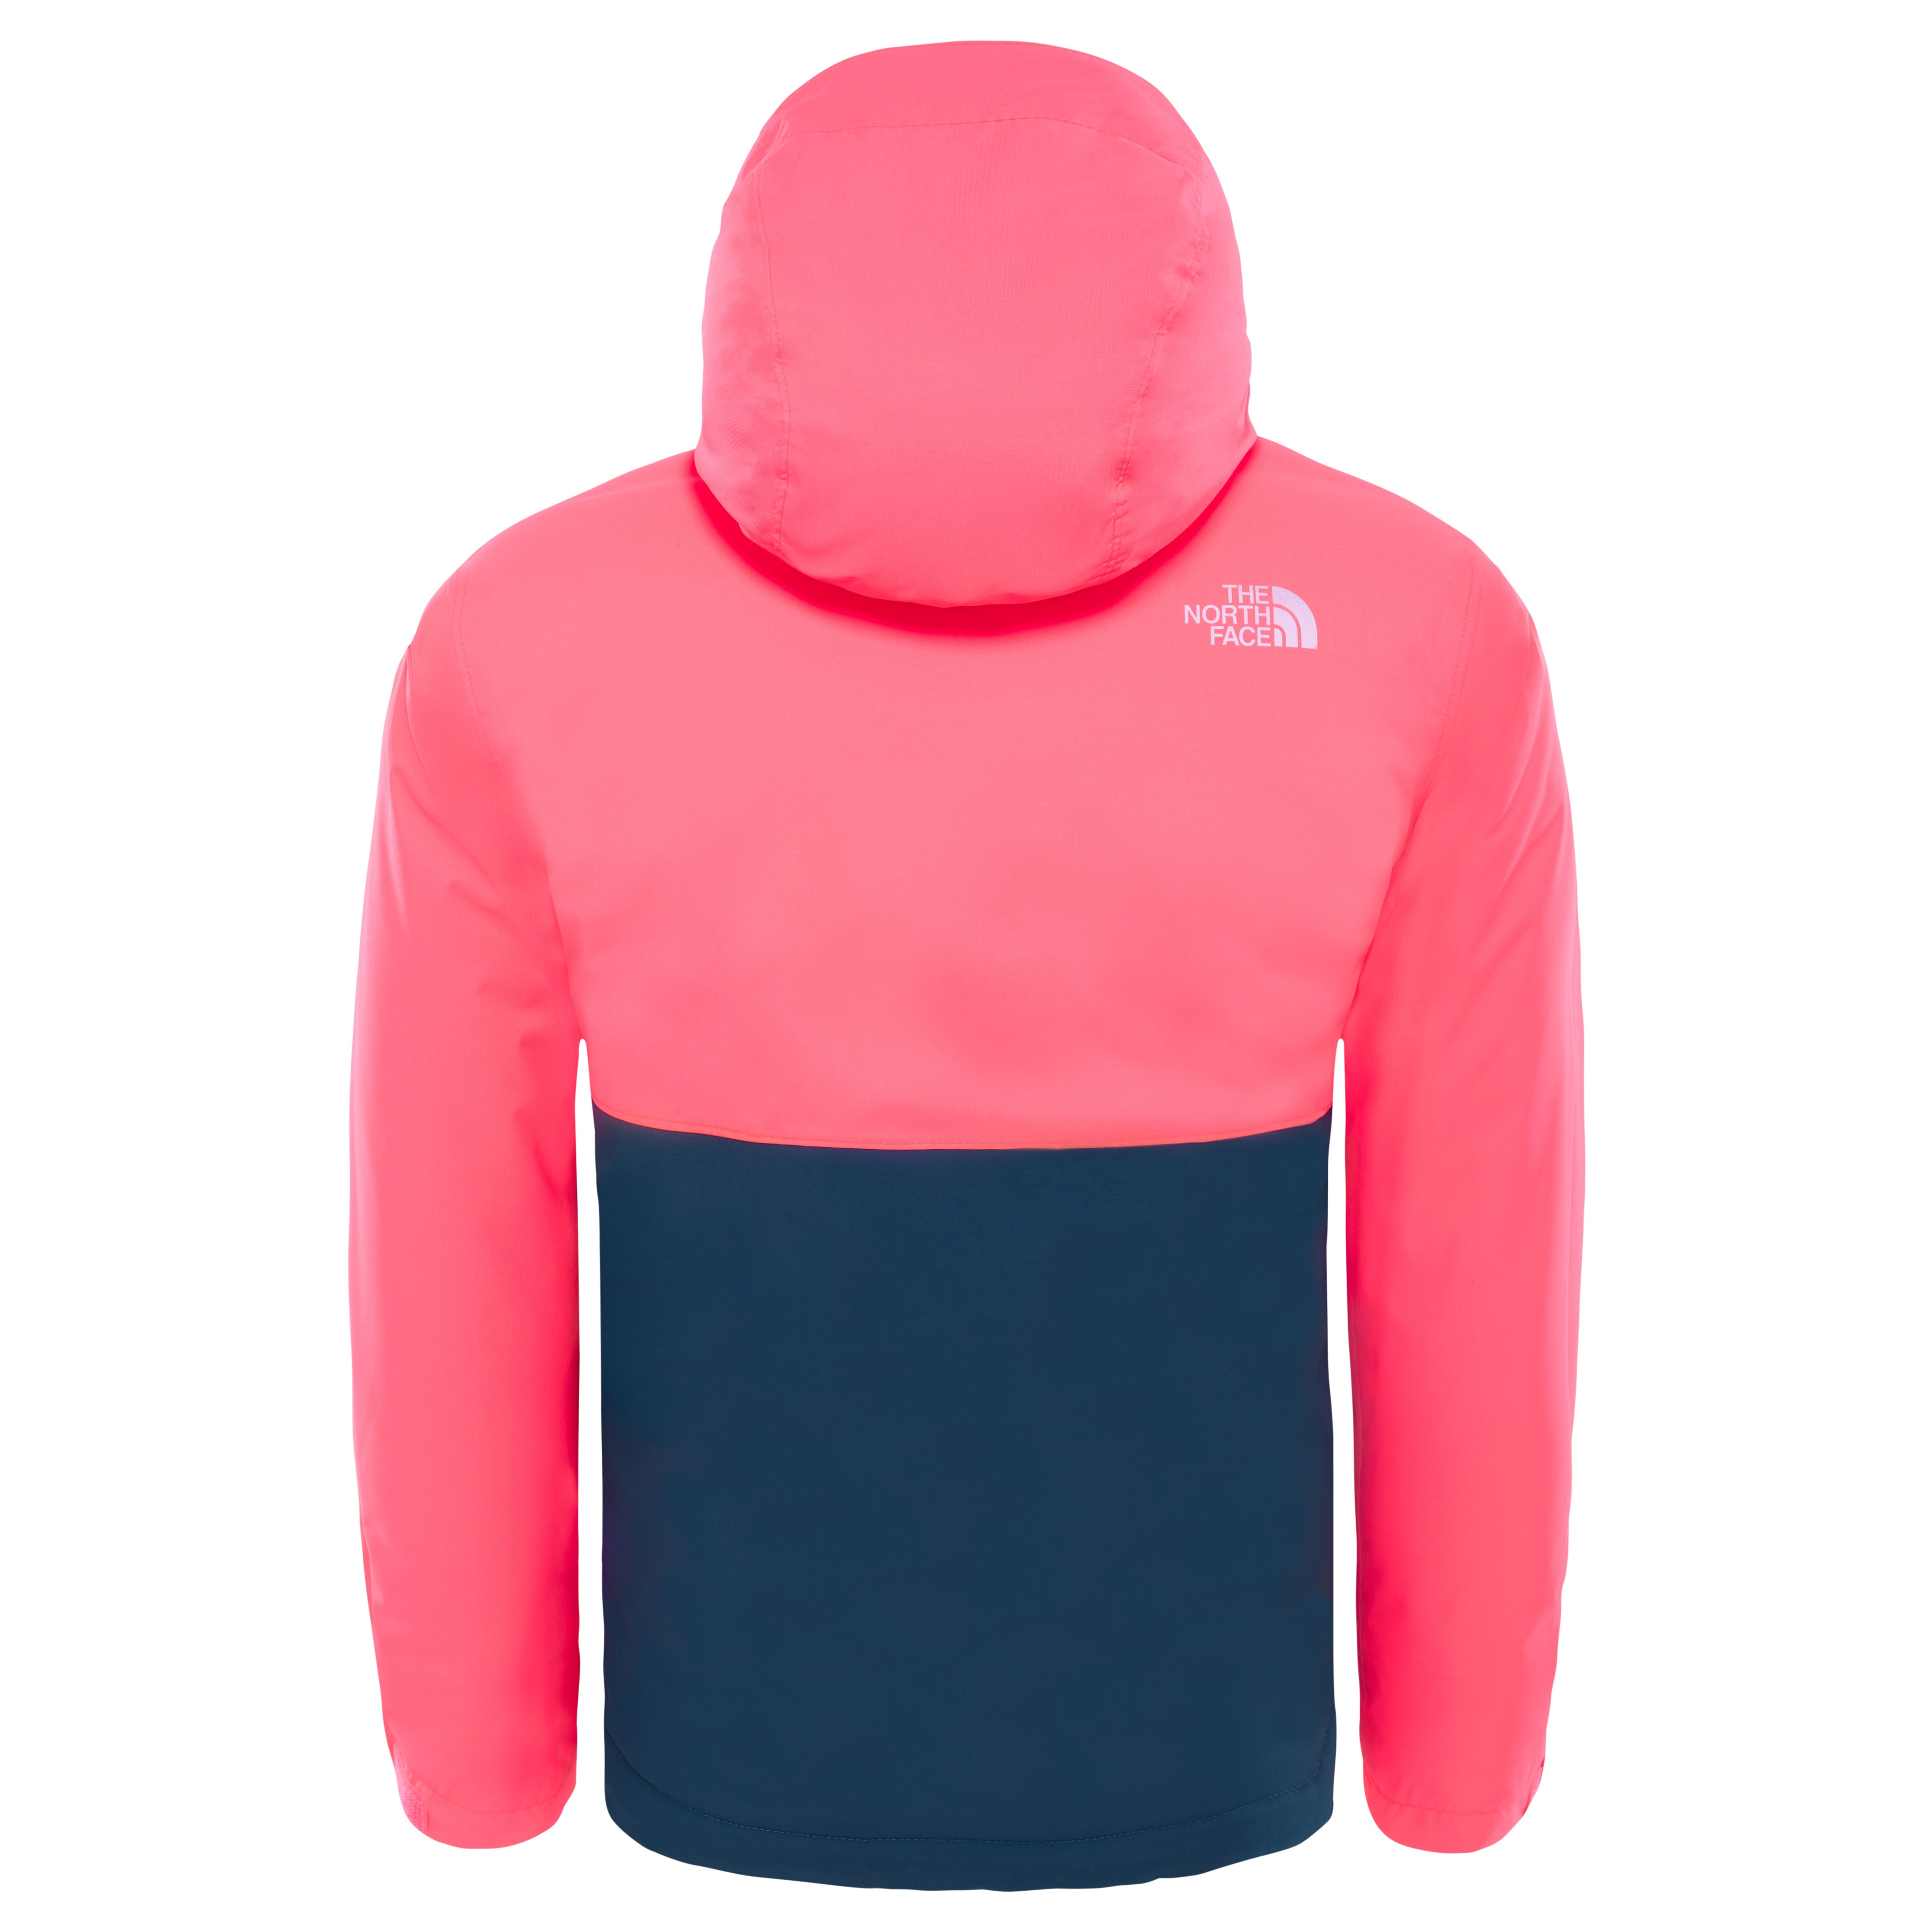 THE NORTH FACE YOUTH SNOW QUEST PLUS JKT - gallery 1 e7db90d6b813